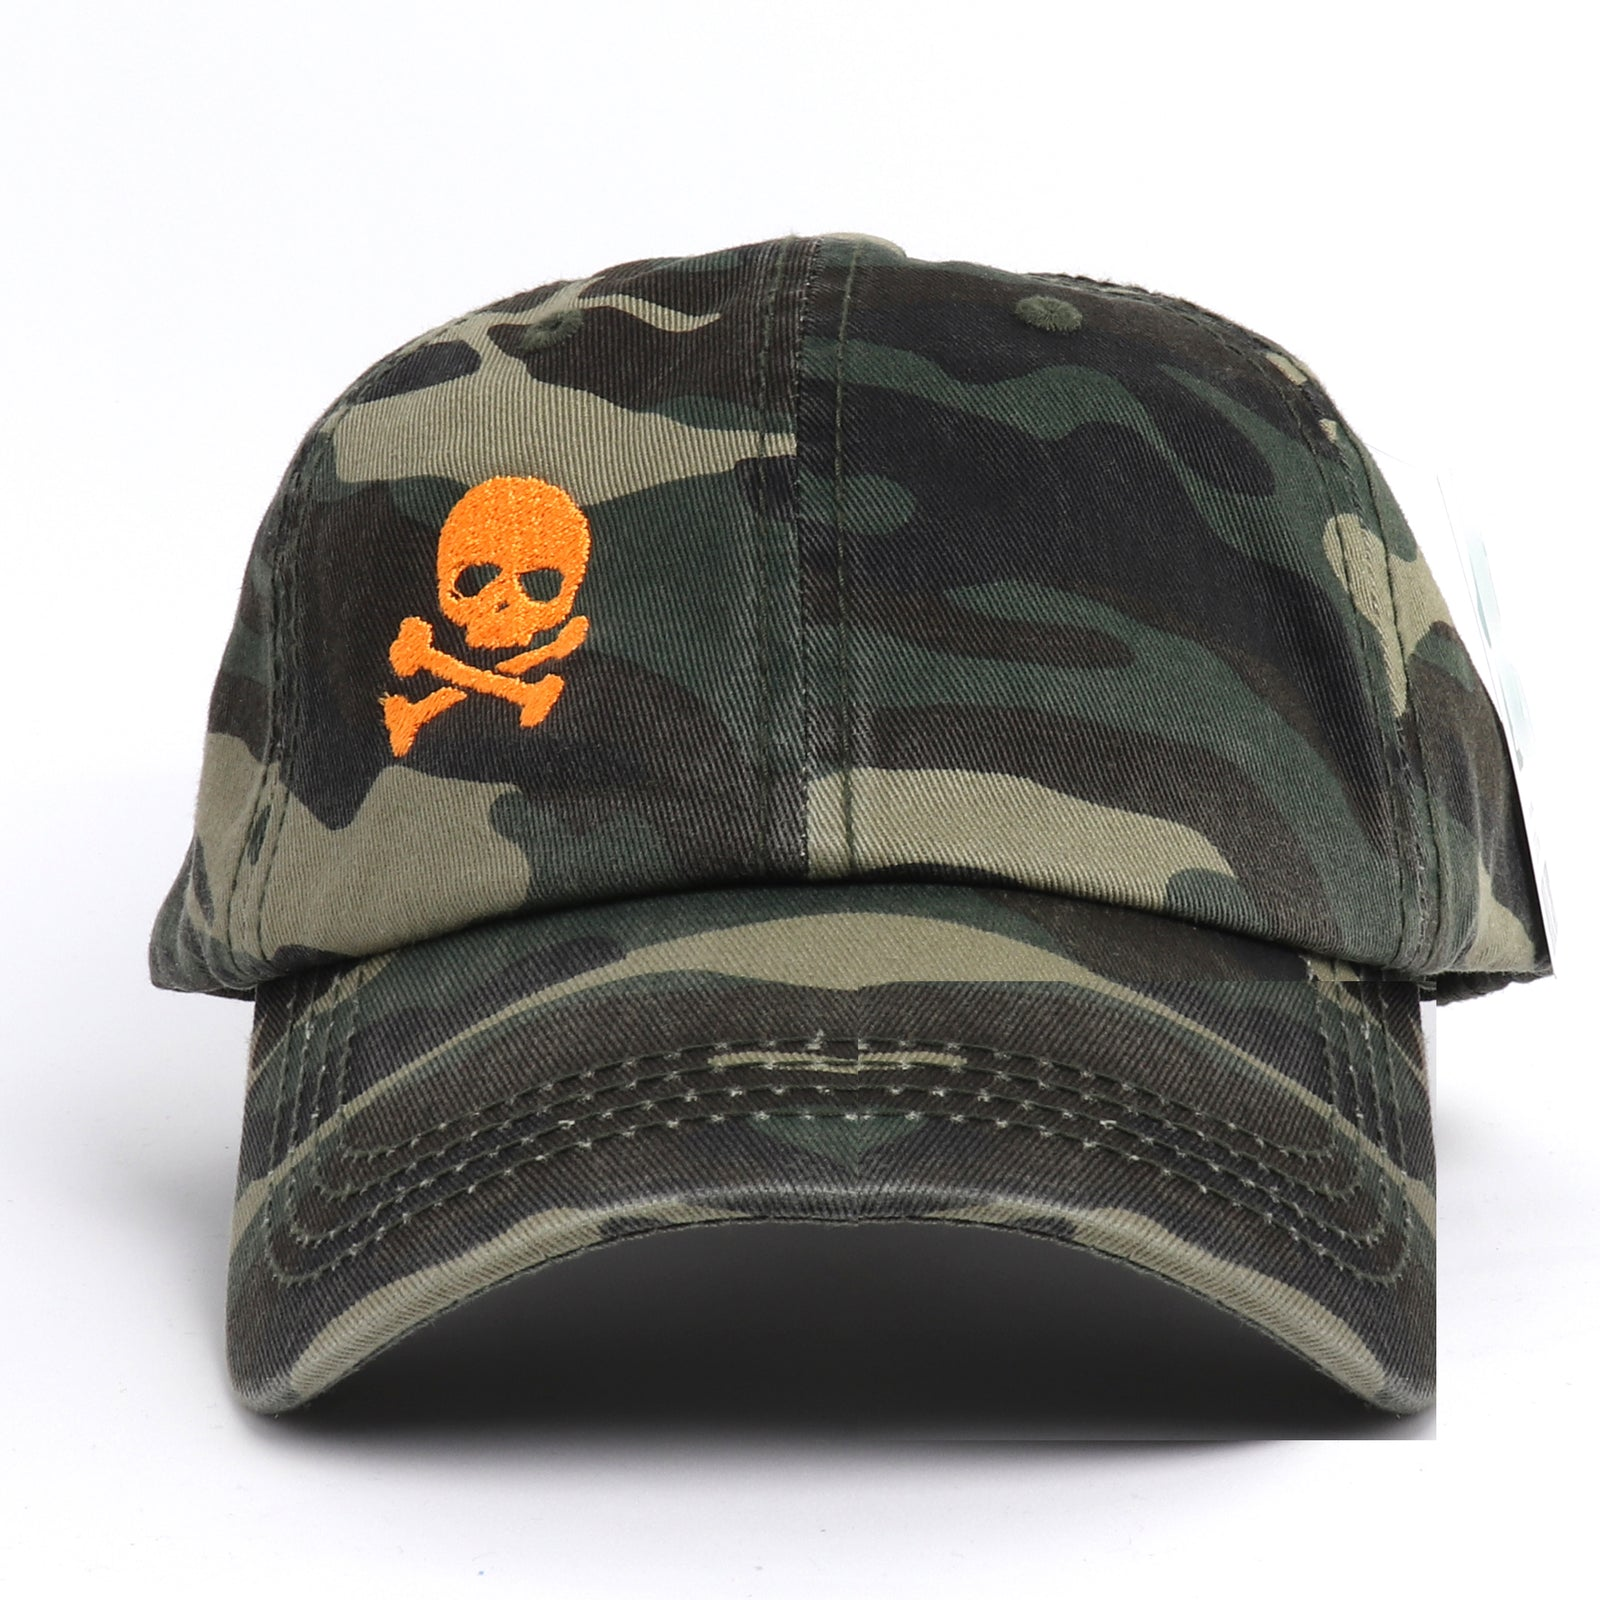 Skull and Crossbone Vintage Camouflage Baseball Cap